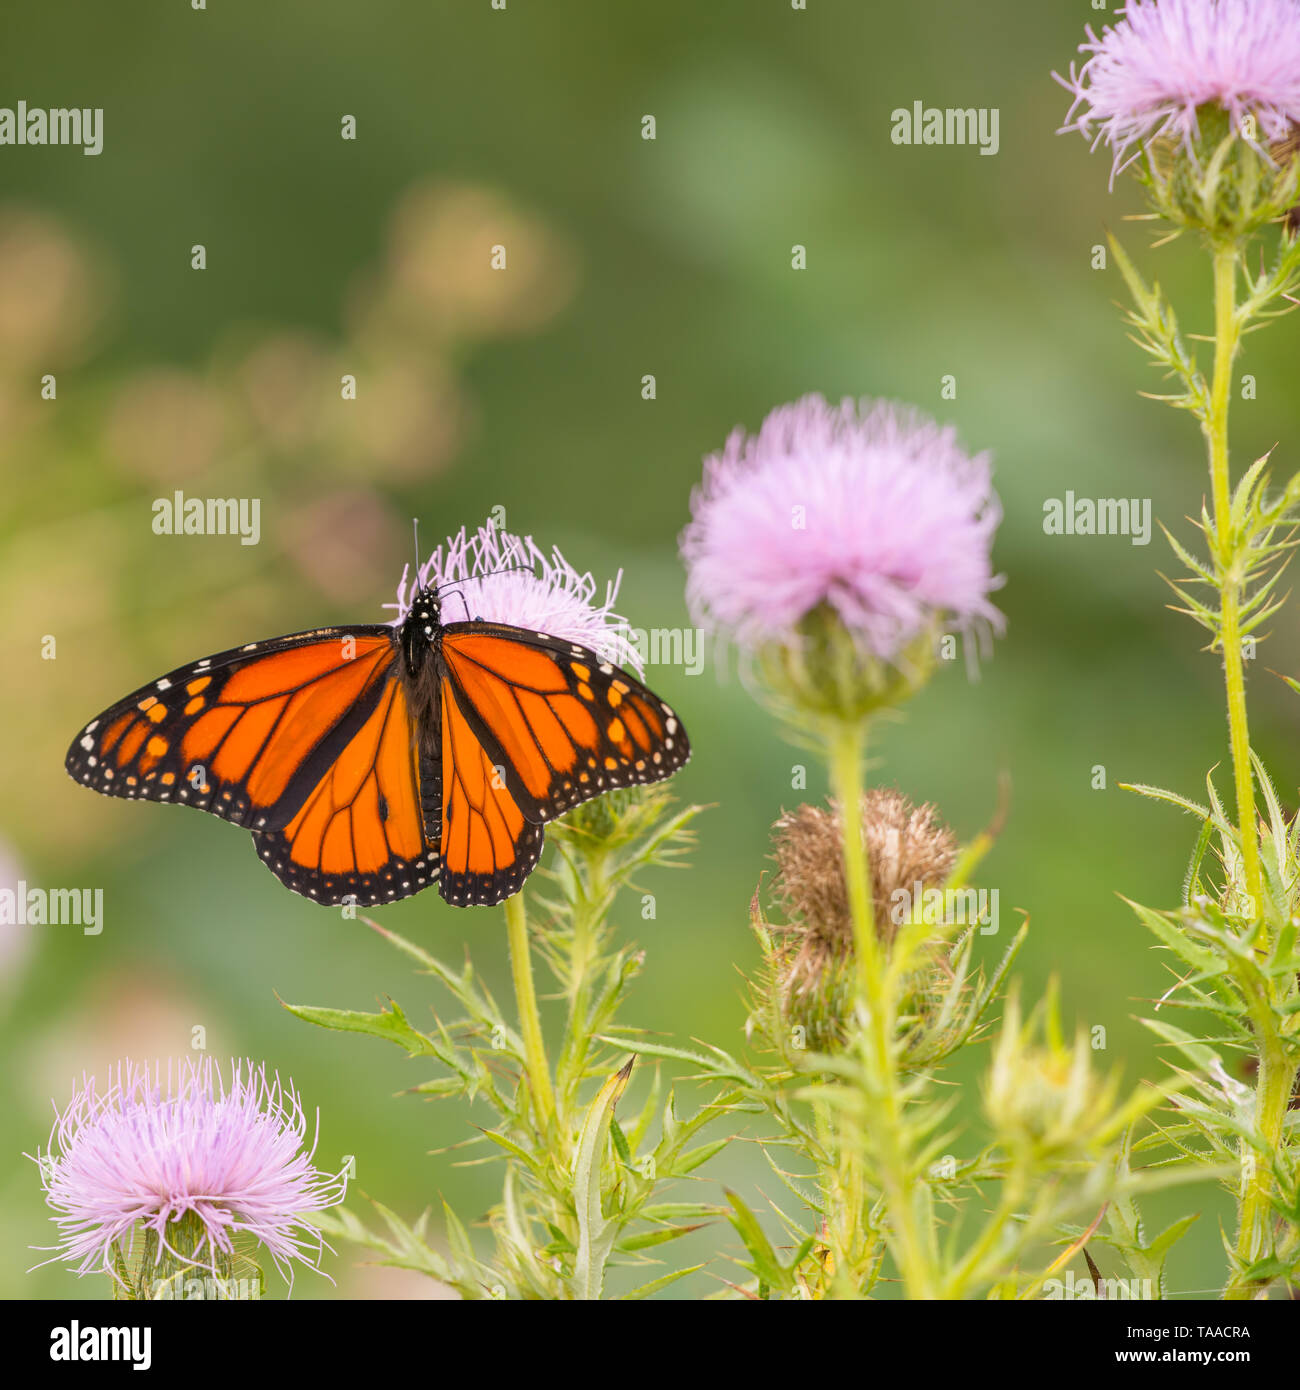 Monarch butterfly on purple wildflower in Theodore Wirth Park in Minneapolis, Minnesota - Stock Image